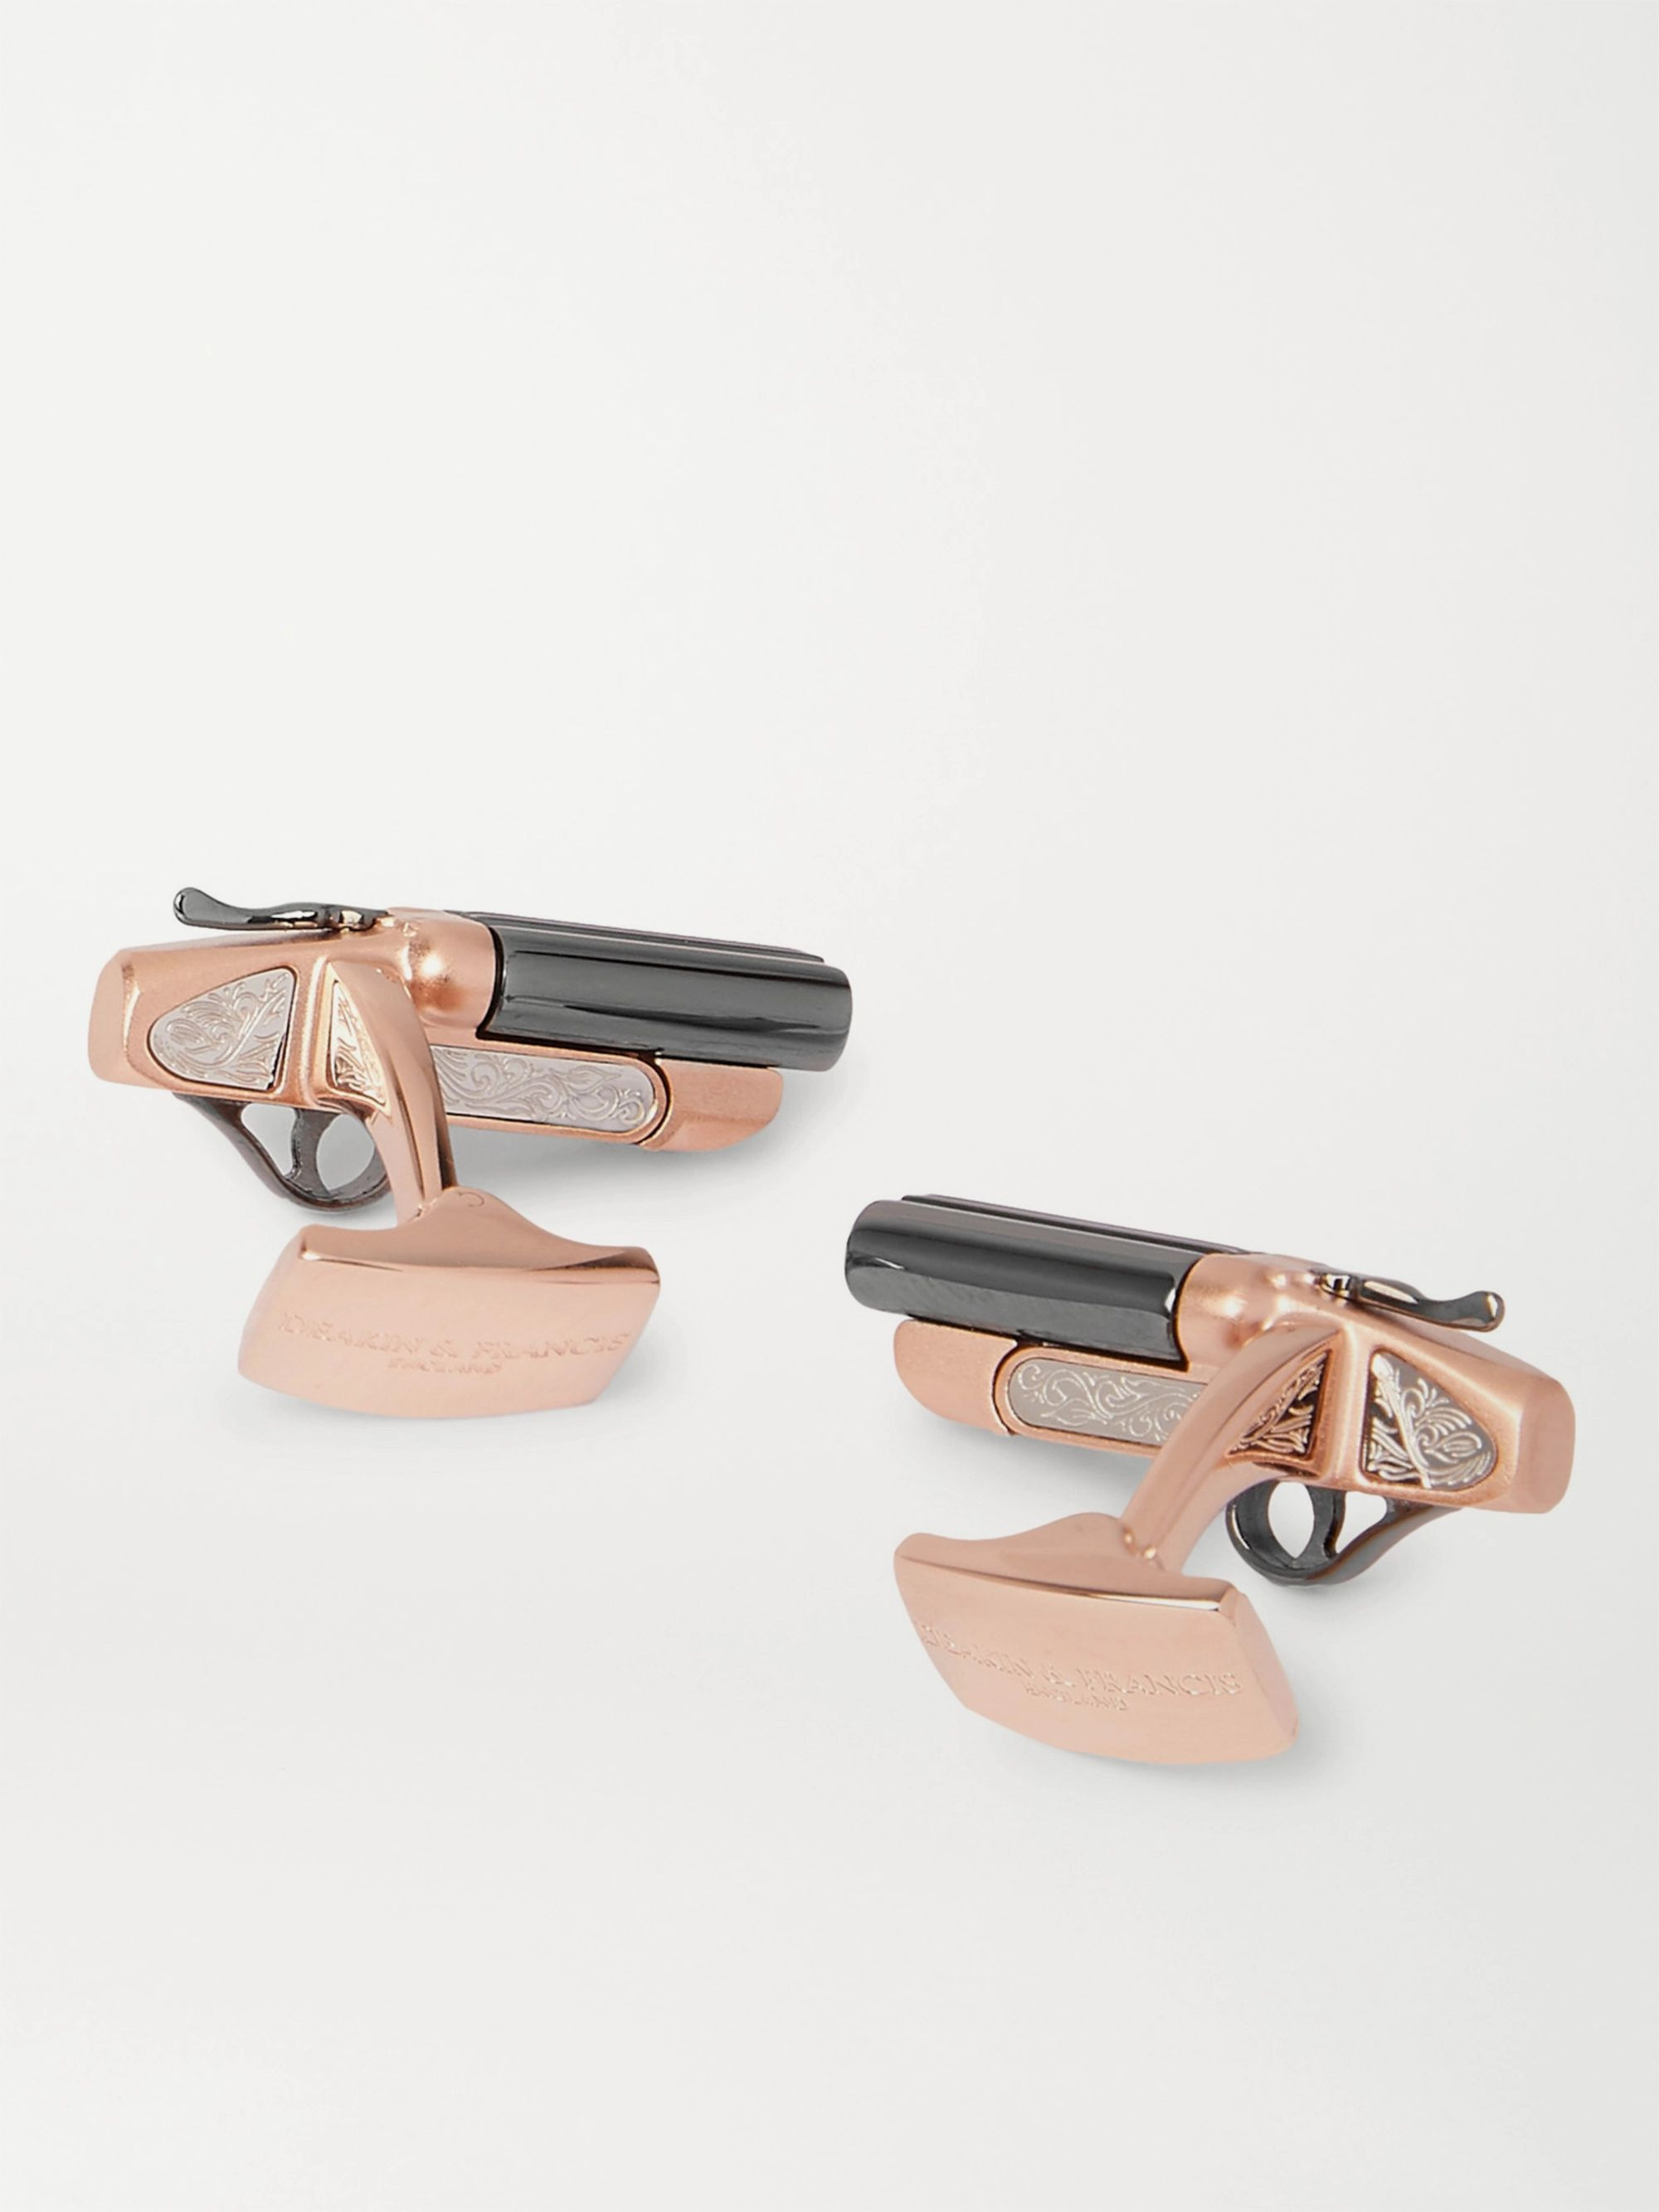 DEAKIN & FRANCIS Rhodium- and Rose Gold-Plated Sterling Silver Cufflinks